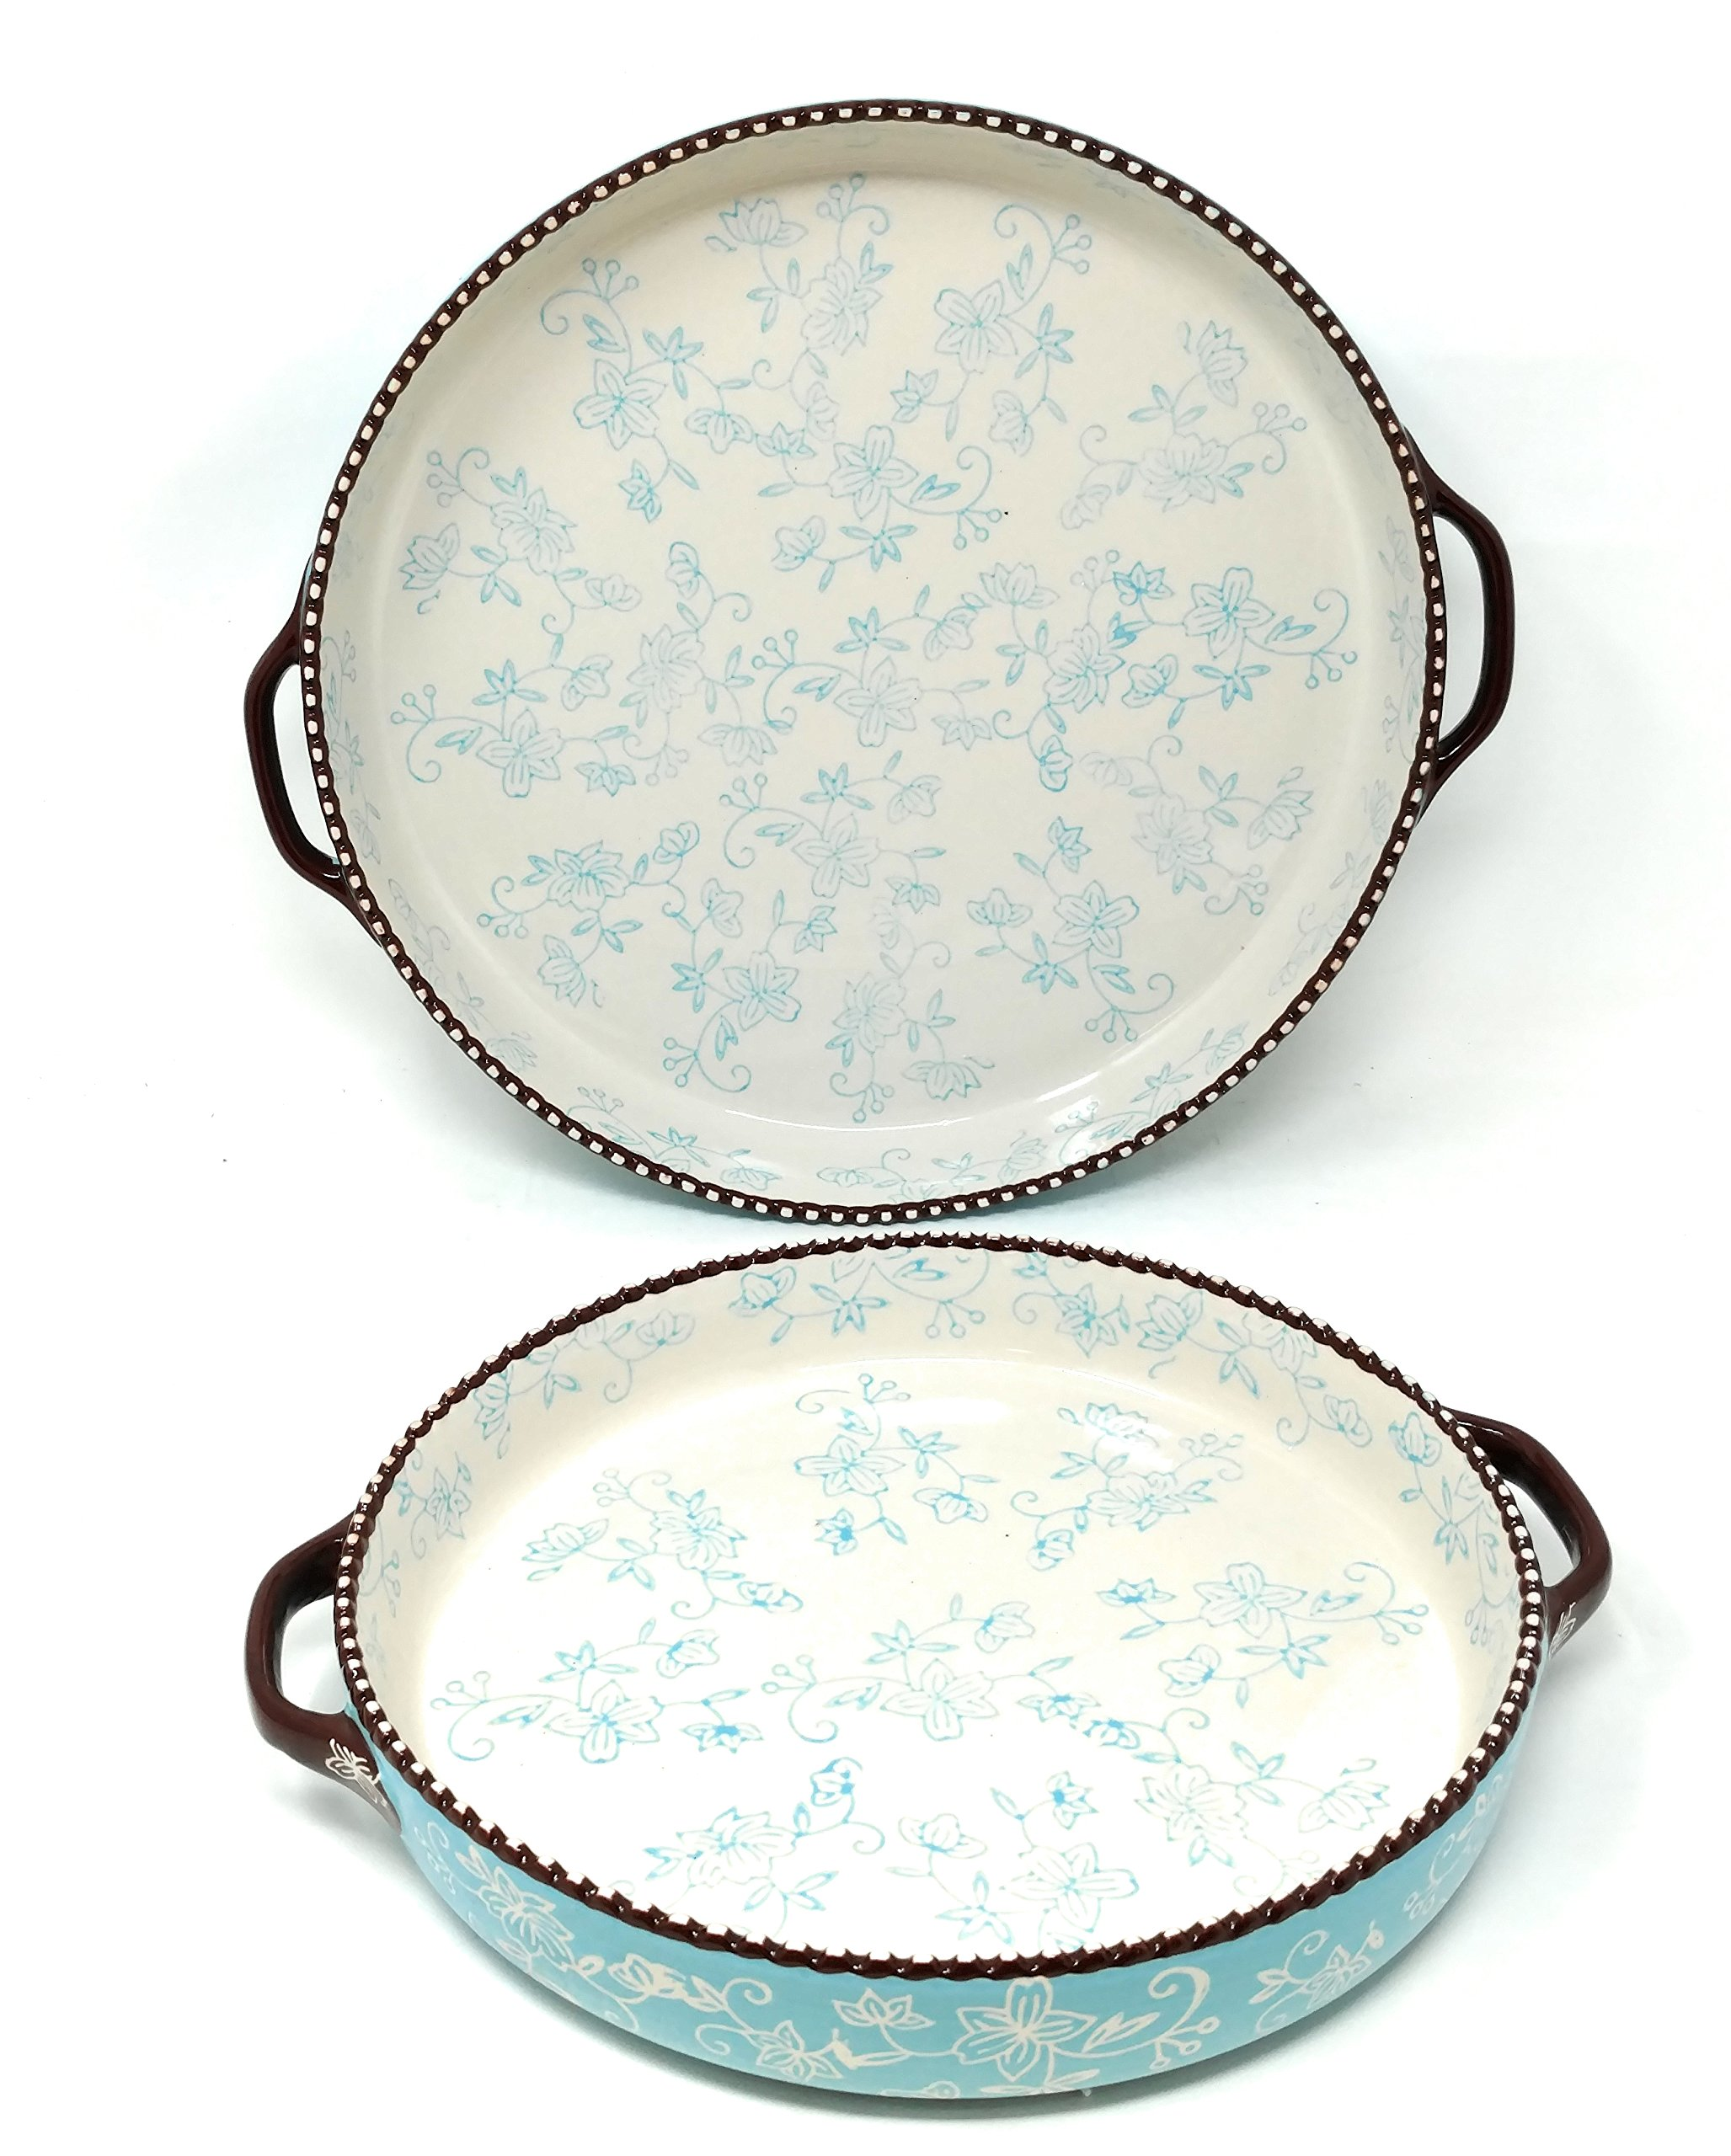 Temp-tations Set of 2 Pizza Deep Dish w/Handles Tart Pan or Shallow Pie/Quiche 11'' & 9'' (Floral Lace Light Blue)